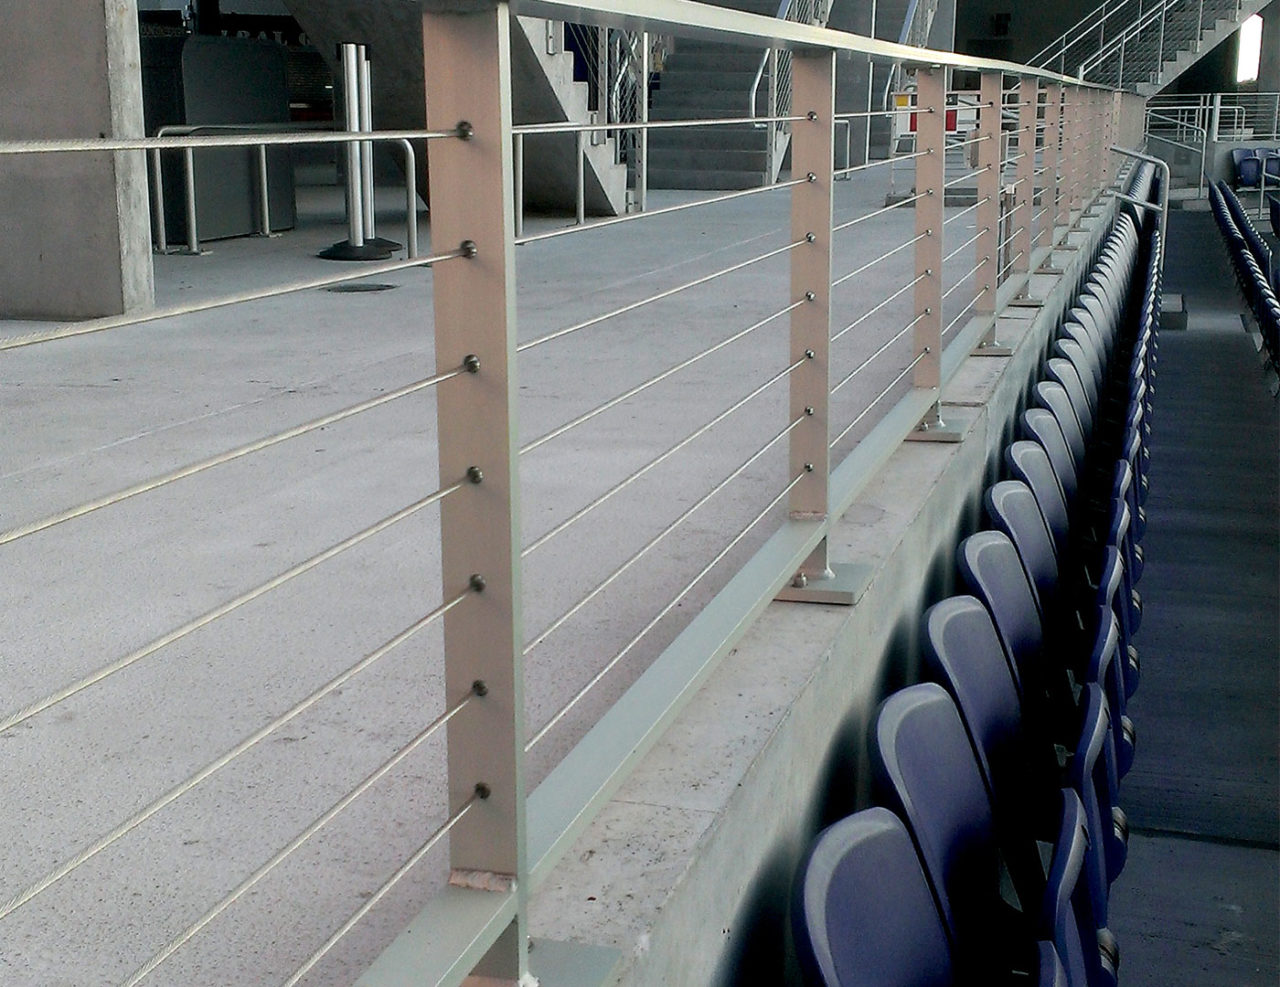 Top mounted Tensiline cable railing used along concourse walkway